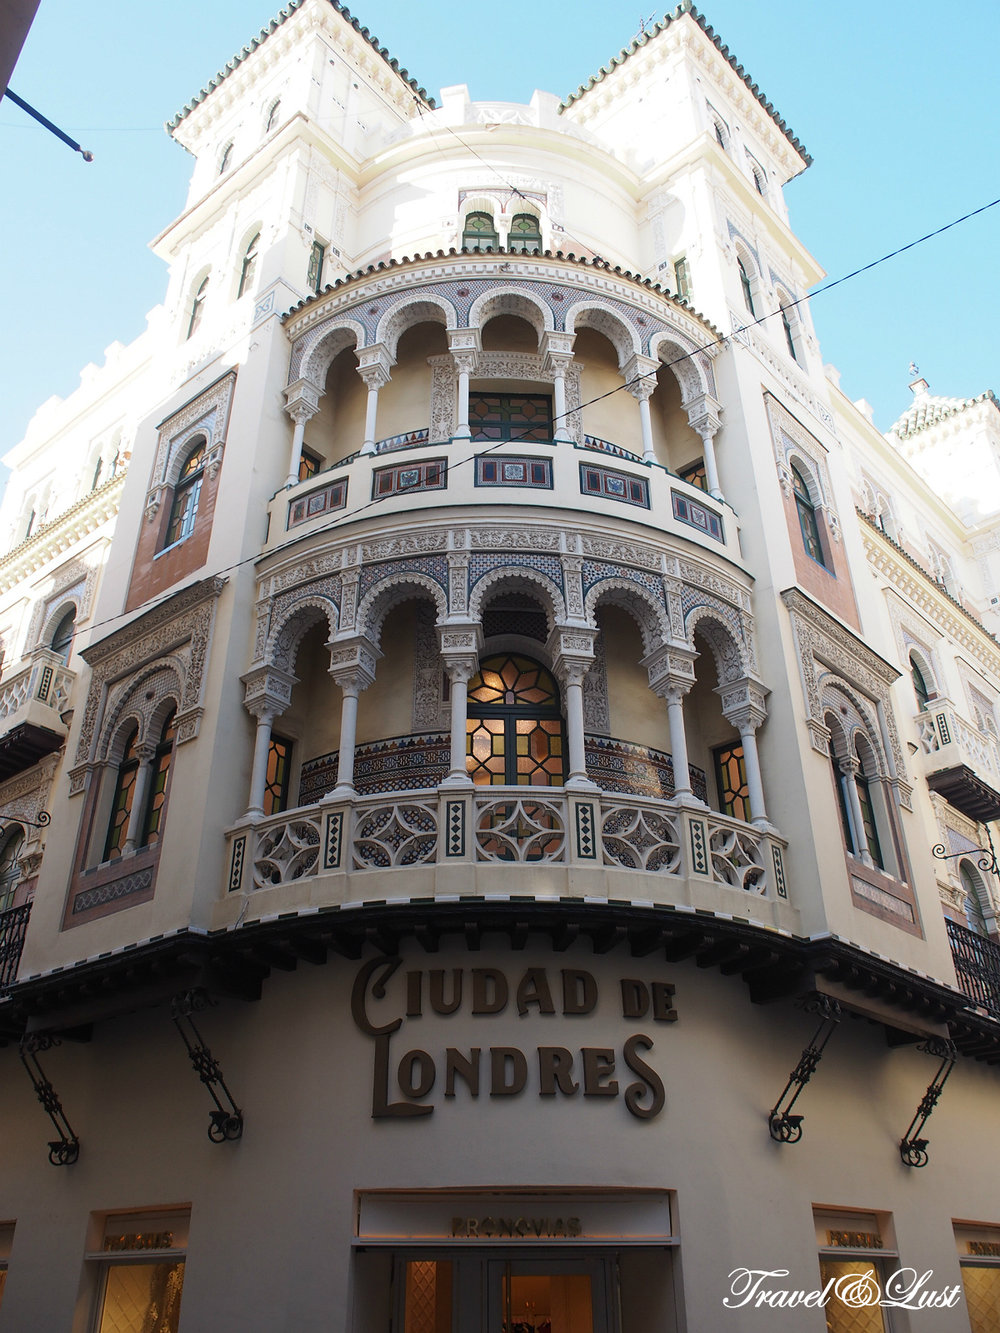 Ciudad de Londres building (City of London), a company with great experience in the field. They are characterised by handling high quality fabrics.